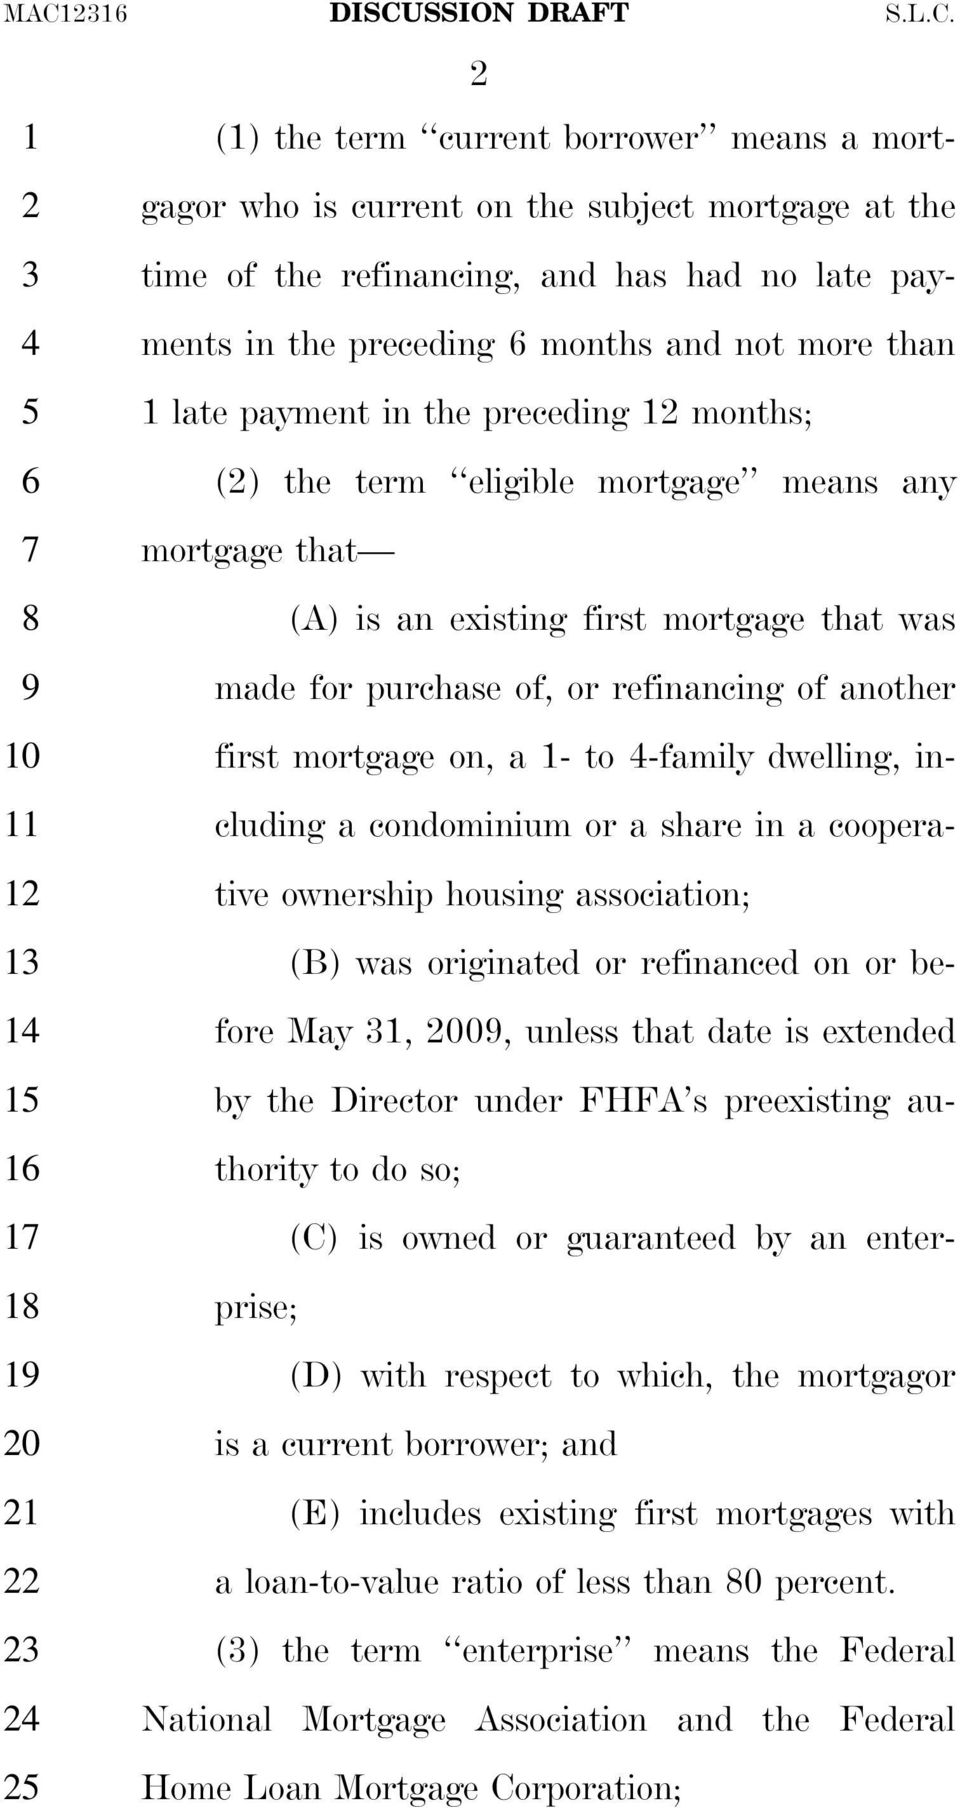 another first mortgage on, a - to -family dwelling, including a condominium or a share in a cooperative ownership housing association; (B) was originated or refinanced on or before May, 00, unless